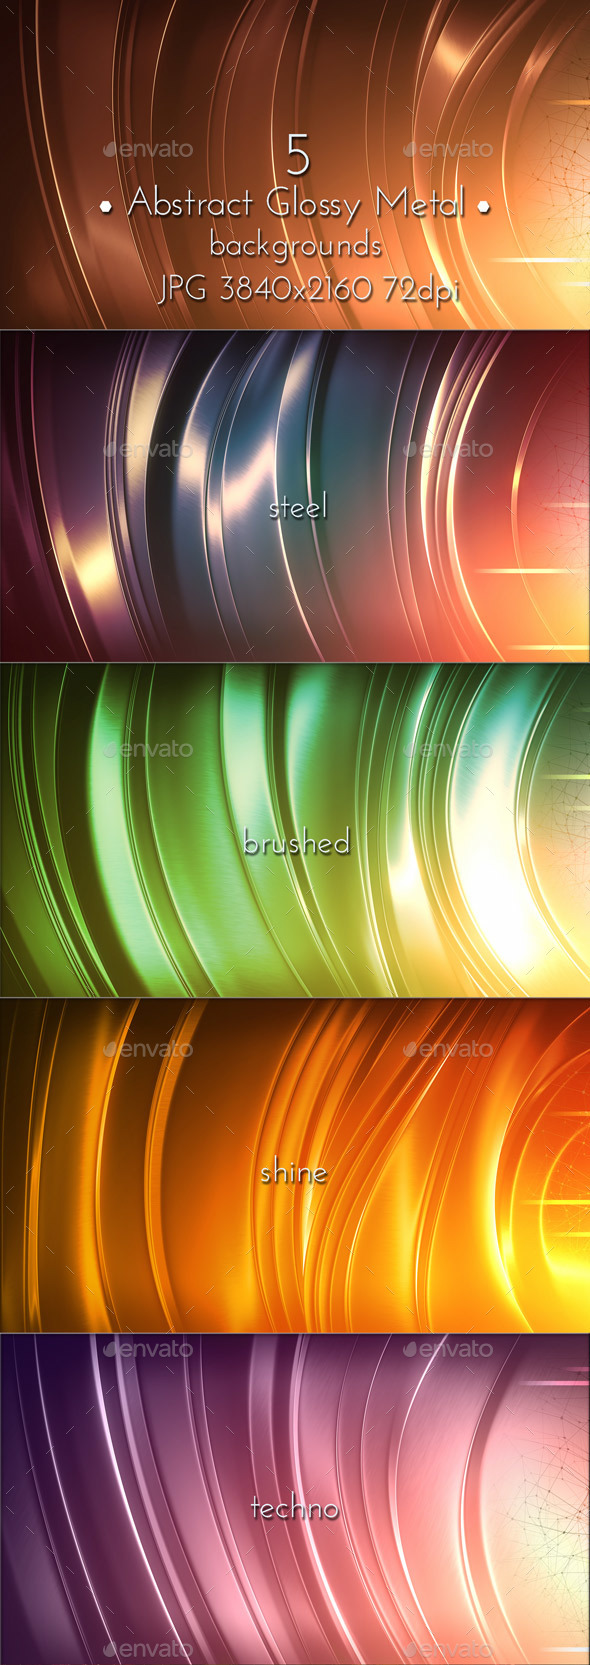 Brushed Metal Glossy Background - Tech / Futuristic Backgrounds